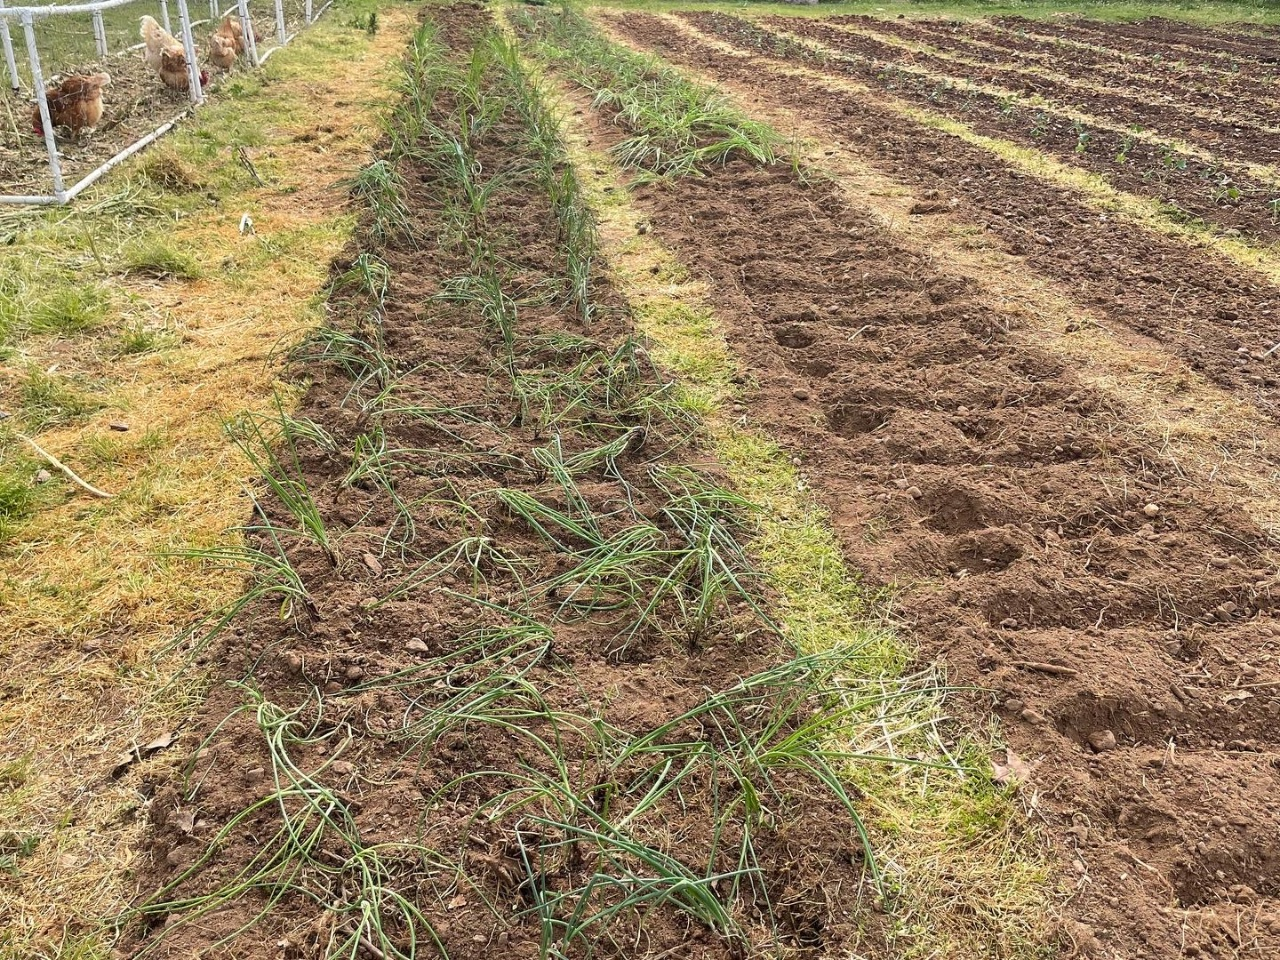 Rows of young onion plants.